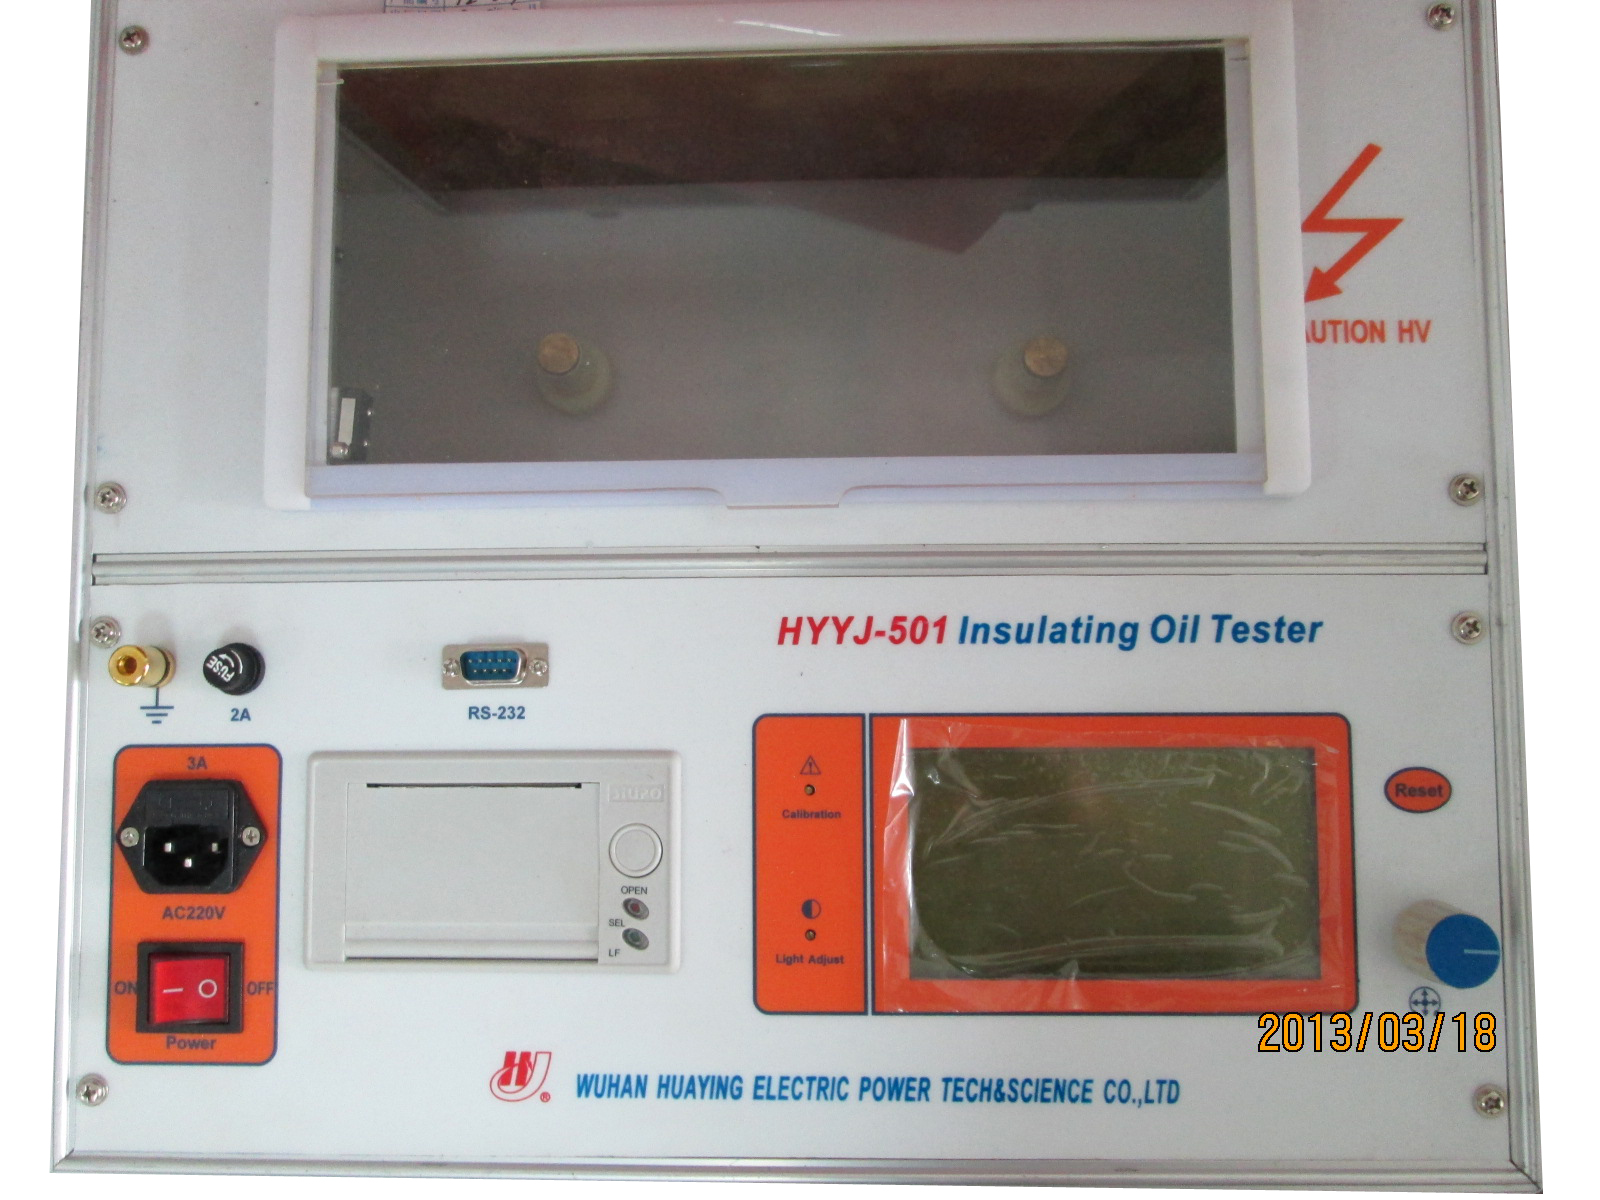 HYYJ-501 insulating oil tester